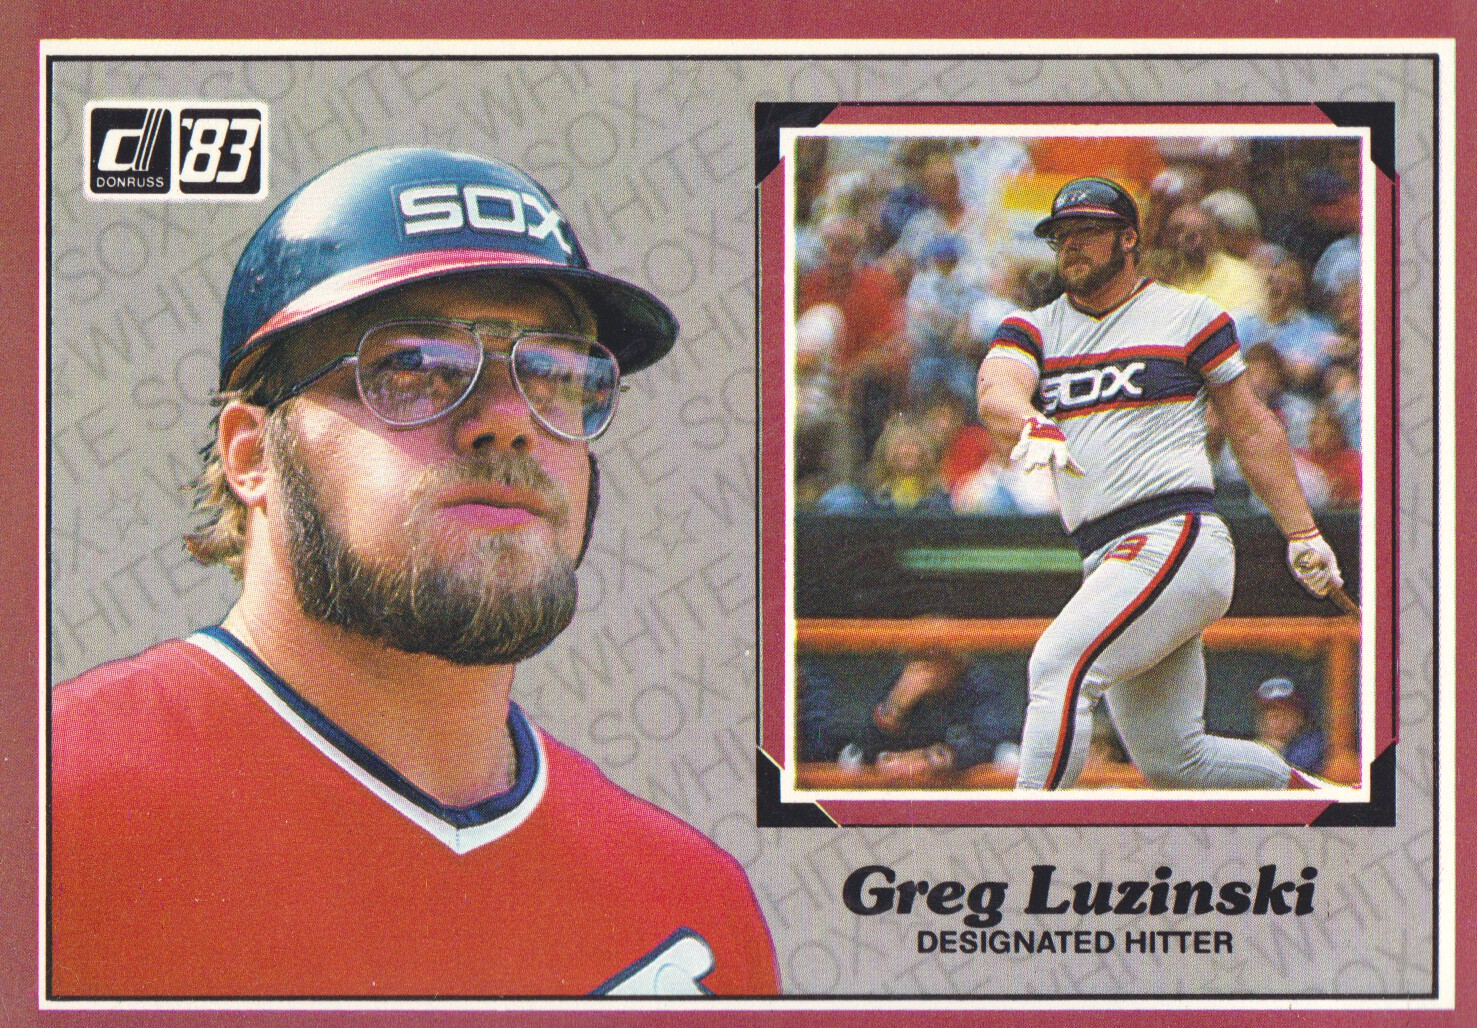 1983 Donruss Action All-Stars #4 Greg Luzinski